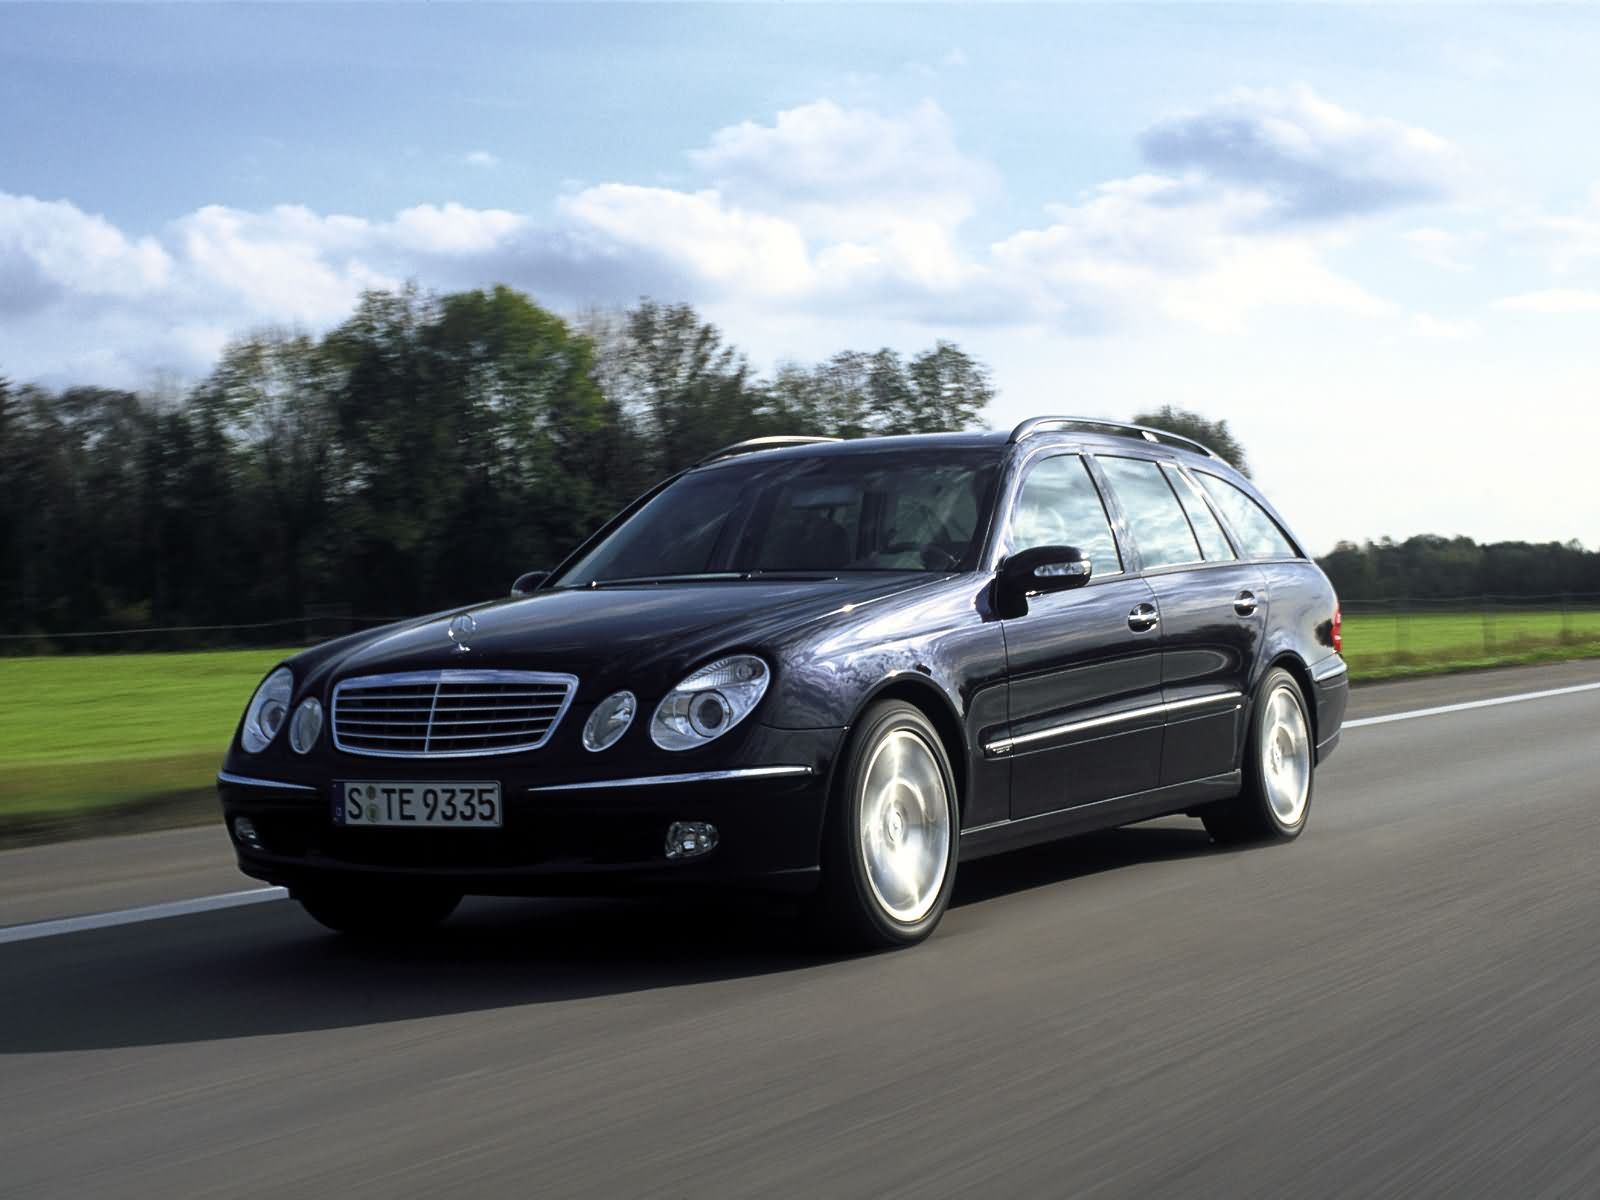 mercedes e klasse e350 estate 2004 mercedes e klasse e350 estate 2004 photo 06 car in pictures. Black Bedroom Furniture Sets. Home Design Ideas